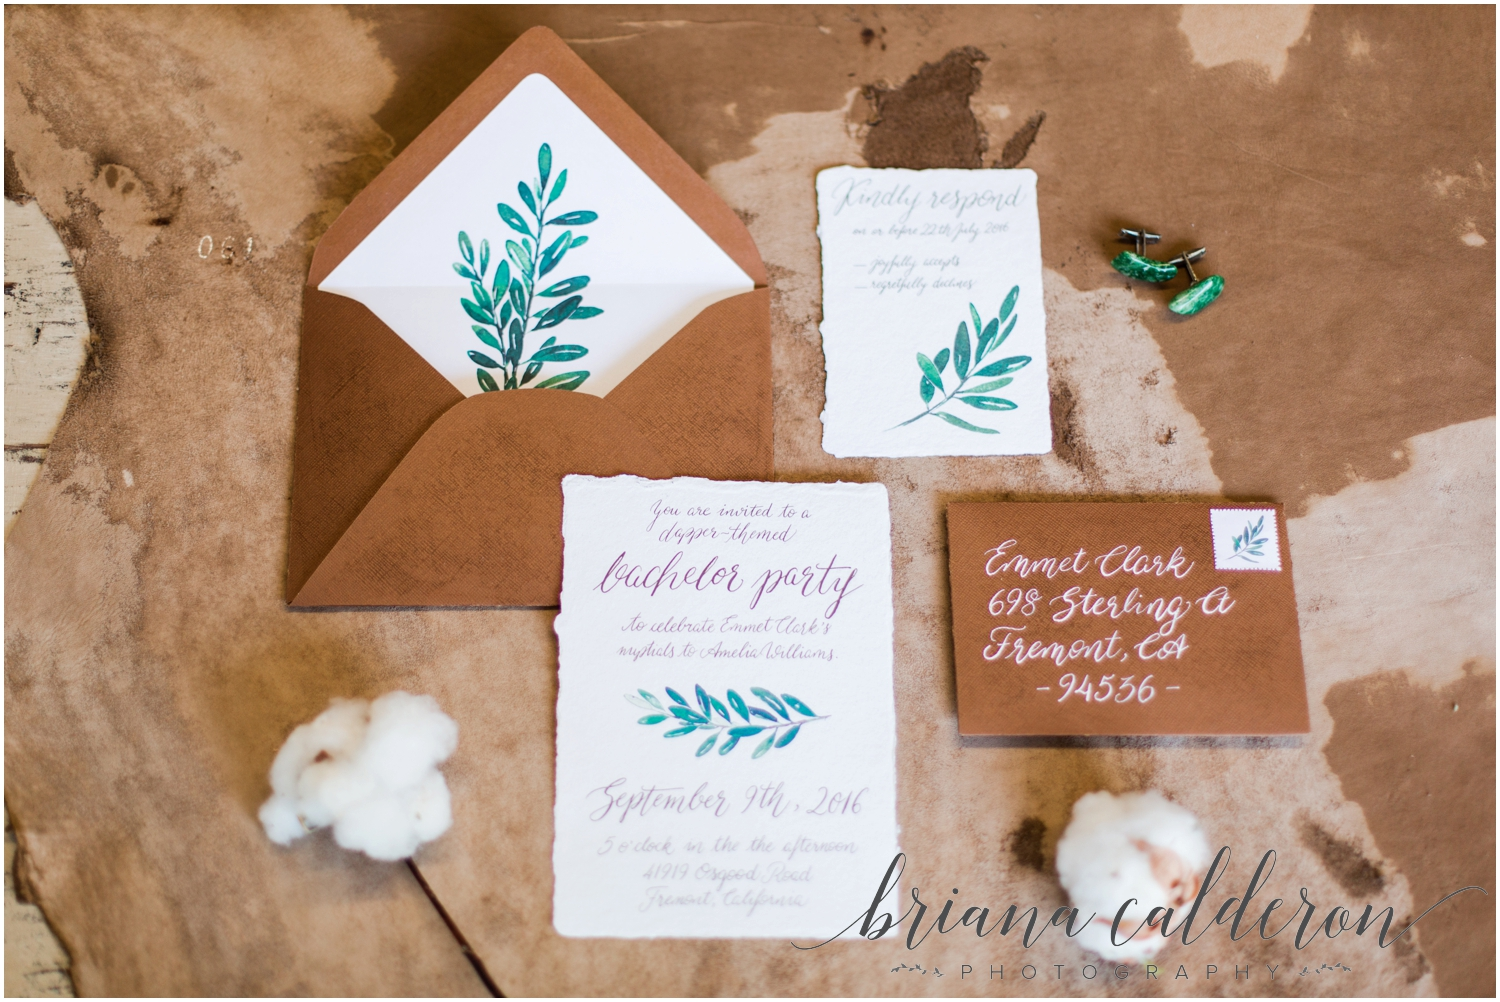 Seventh Heaven Vintage Rental styled shoot. Photos by Briana Calderon Photography_0788.jpg